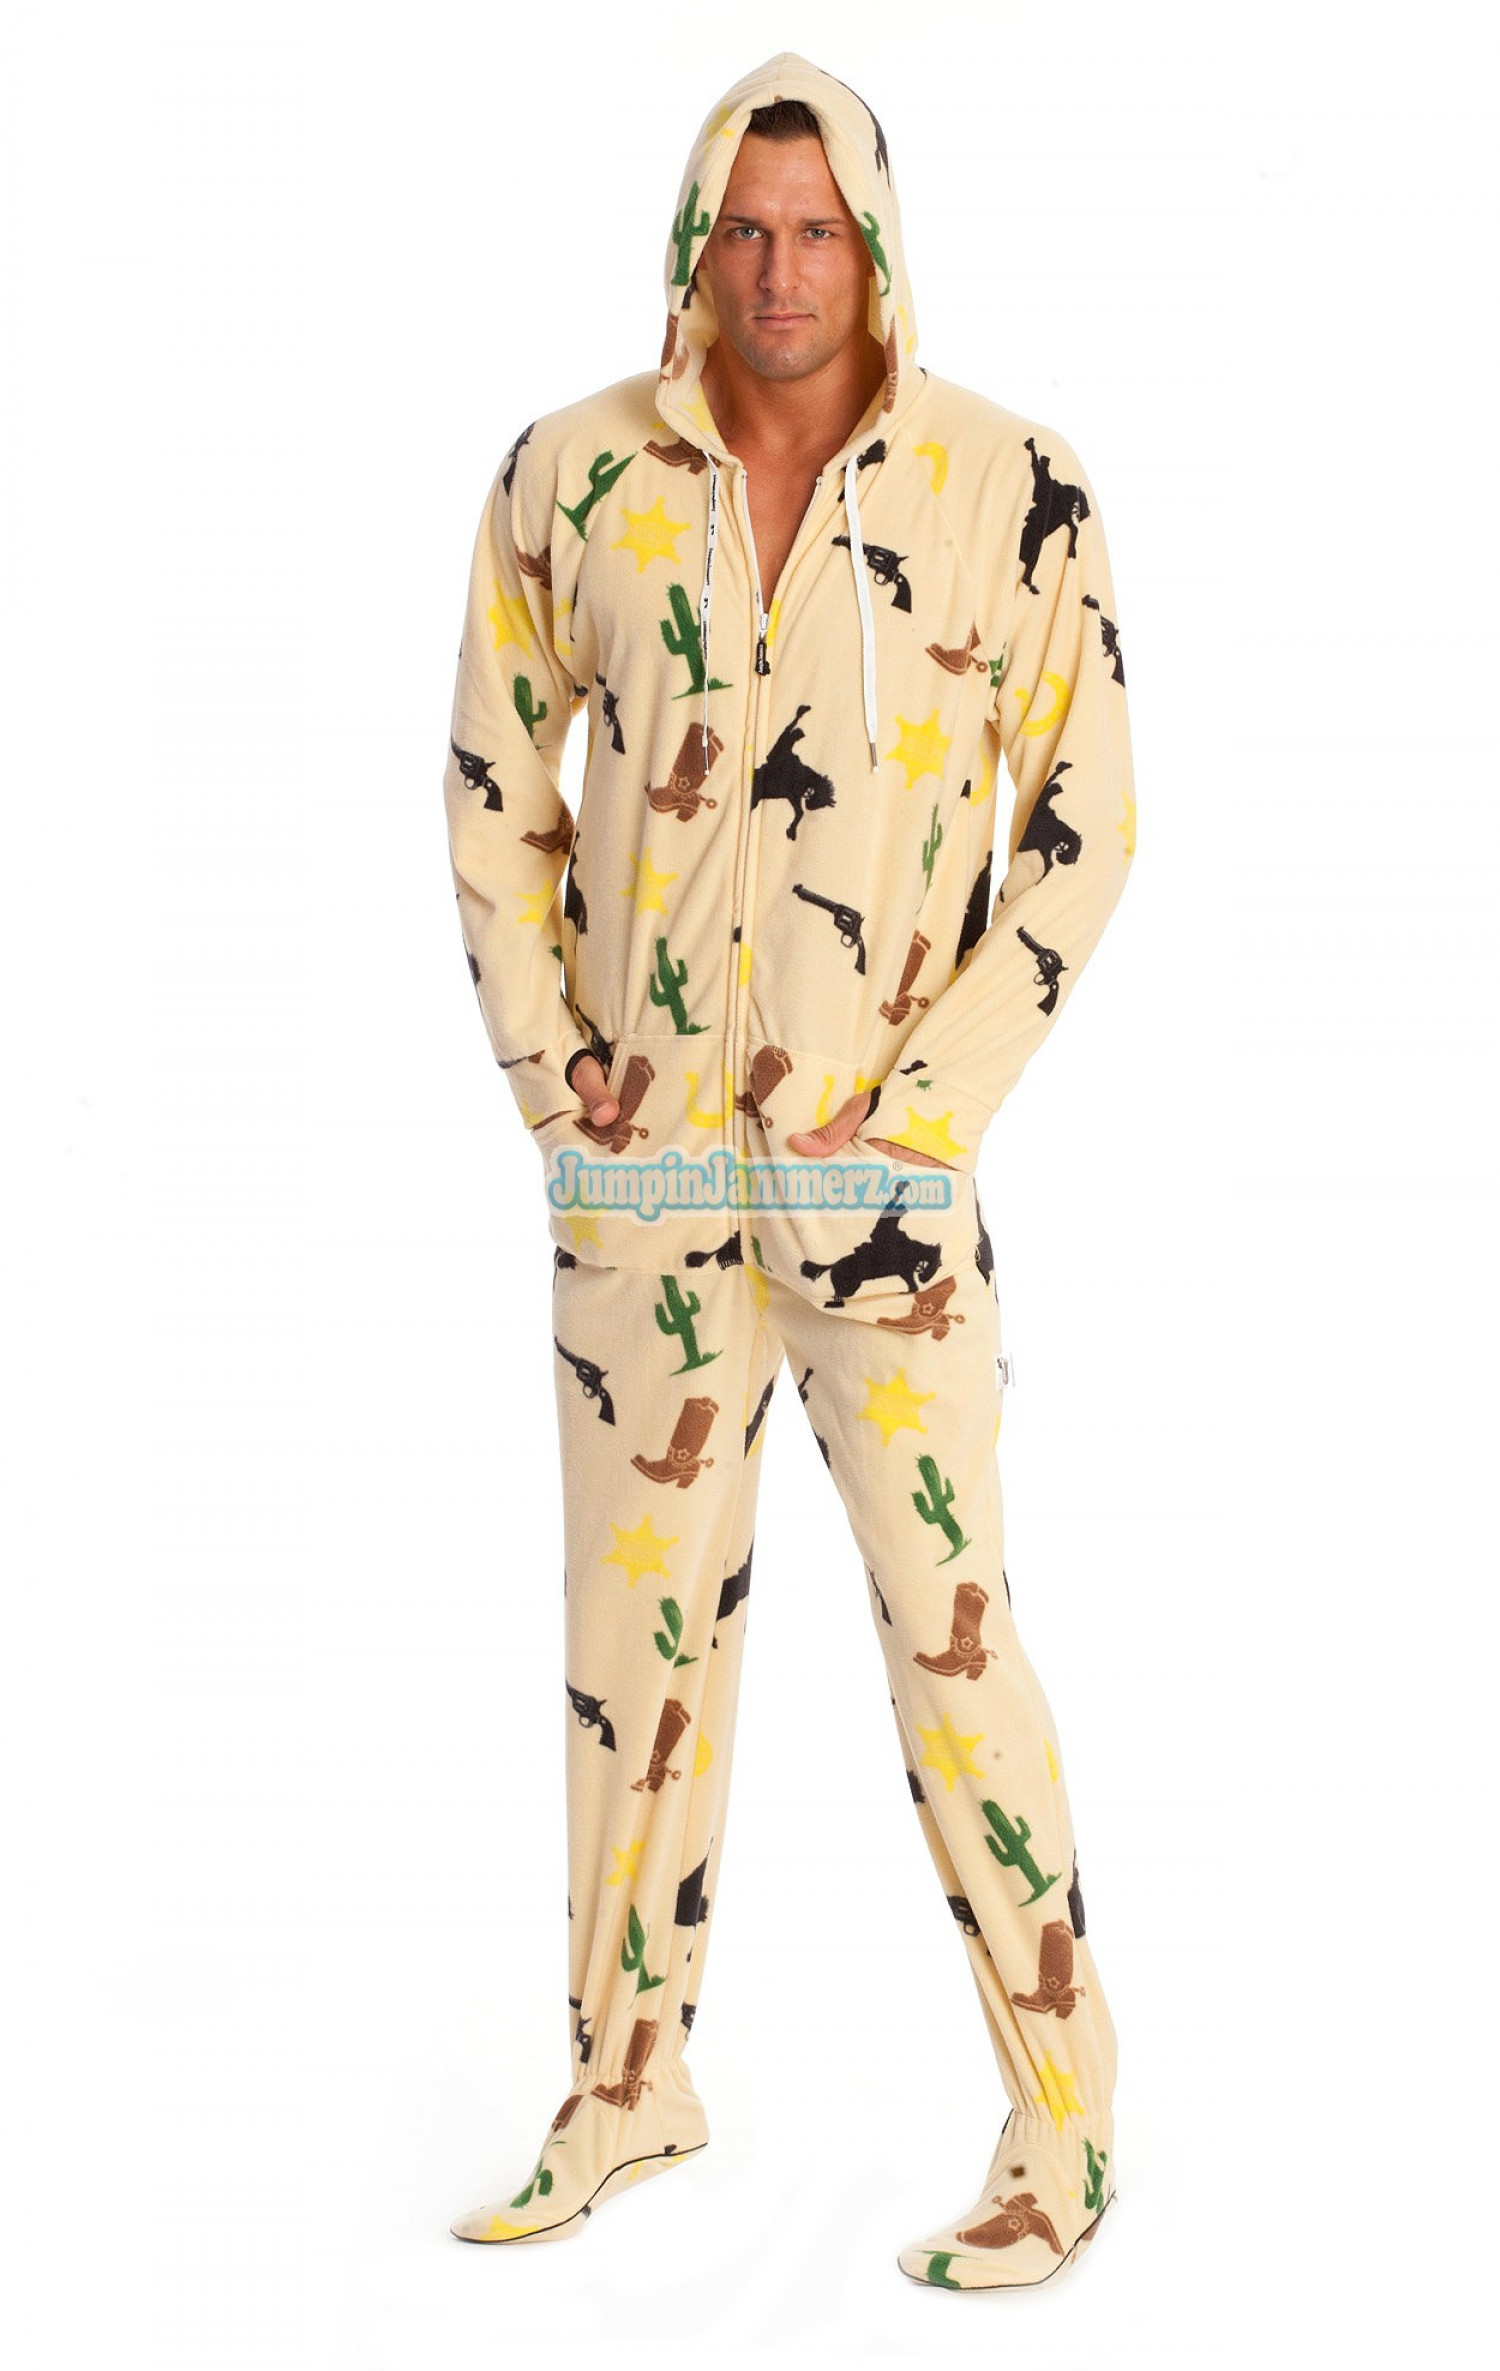 Jumpin Jammerz : mens footed pajamas | Visual.ly